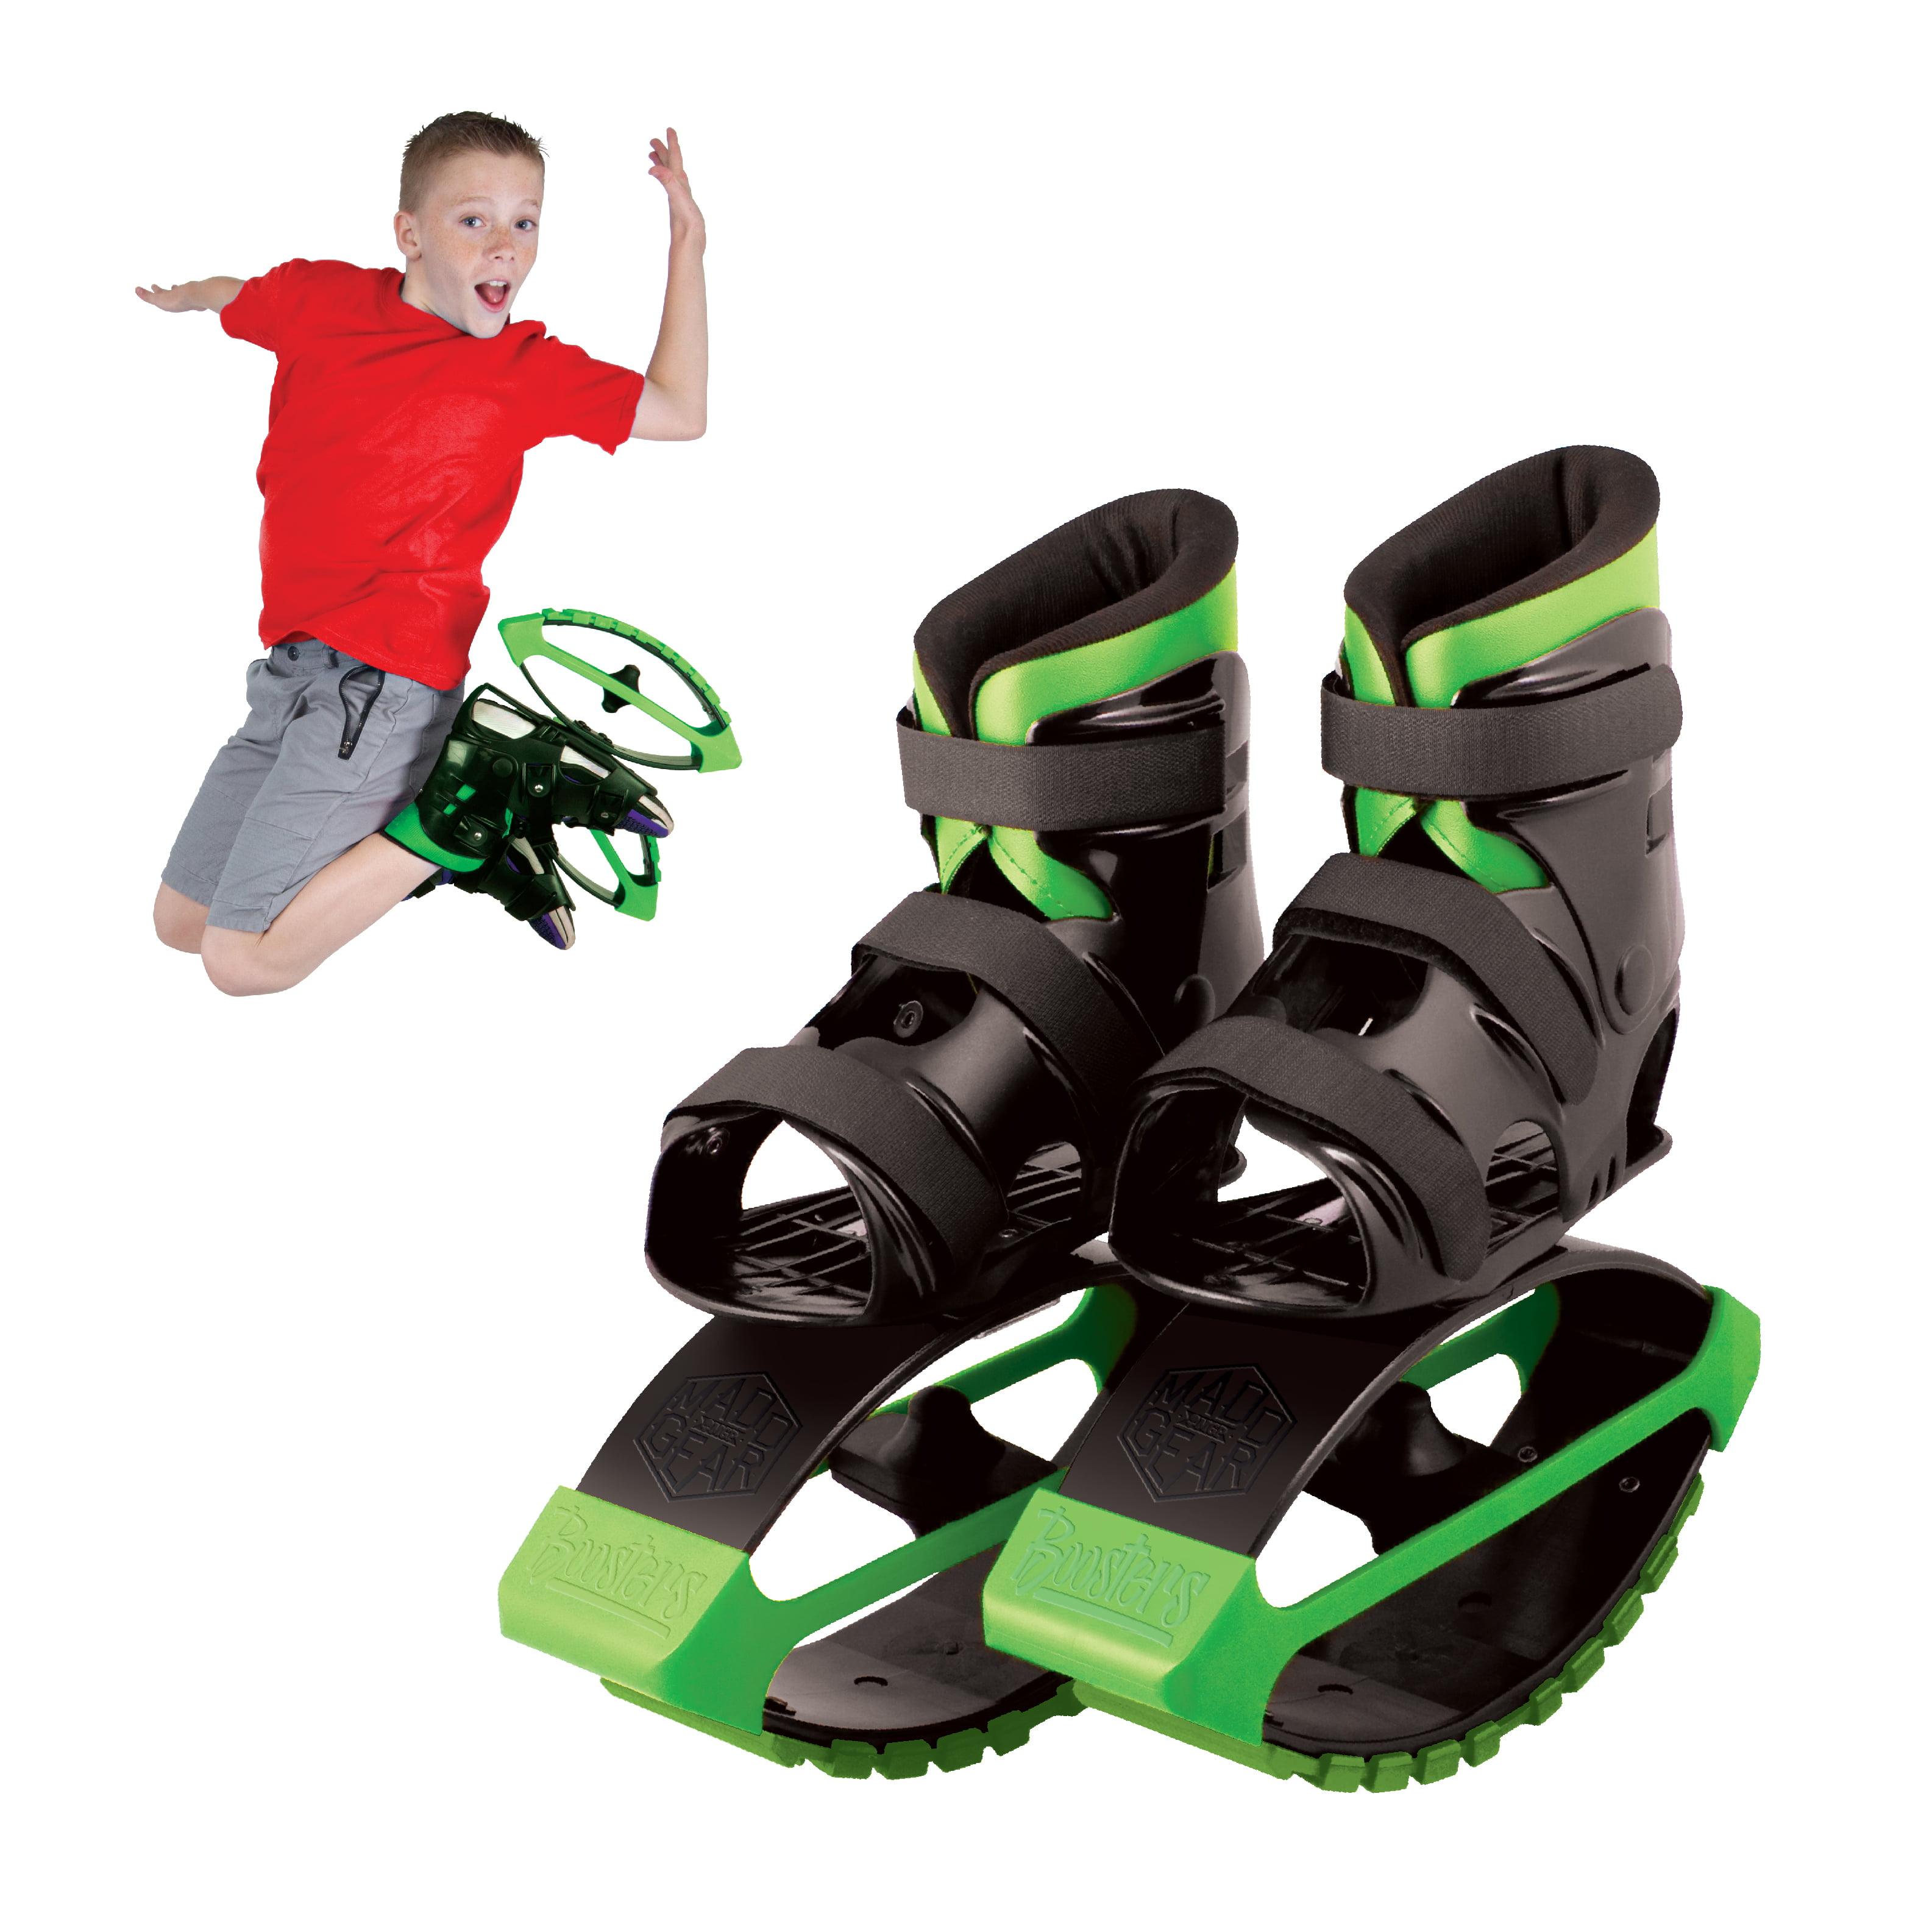 MADD GEAR – BOOST BOOTS – Kids Jumping Shoes – Black Green – Suites Boys & Girls Ages 5+ Max User Weight 88lbs – 3 Year Manufacturer's Warranty